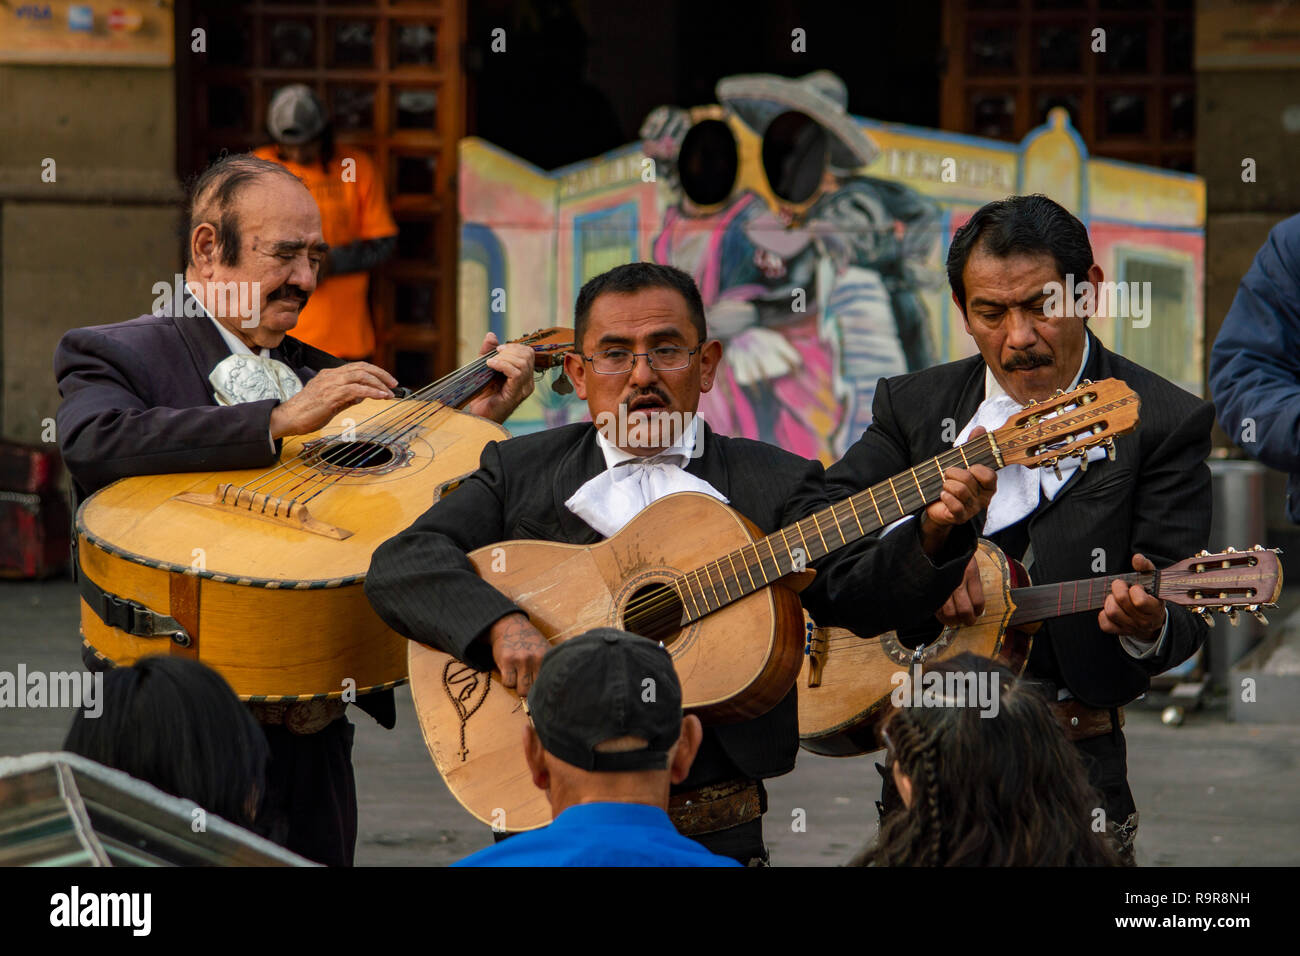 A Mariachi band performing at Plaza Garibaldi in Mexico City, Mexico - Stock Image